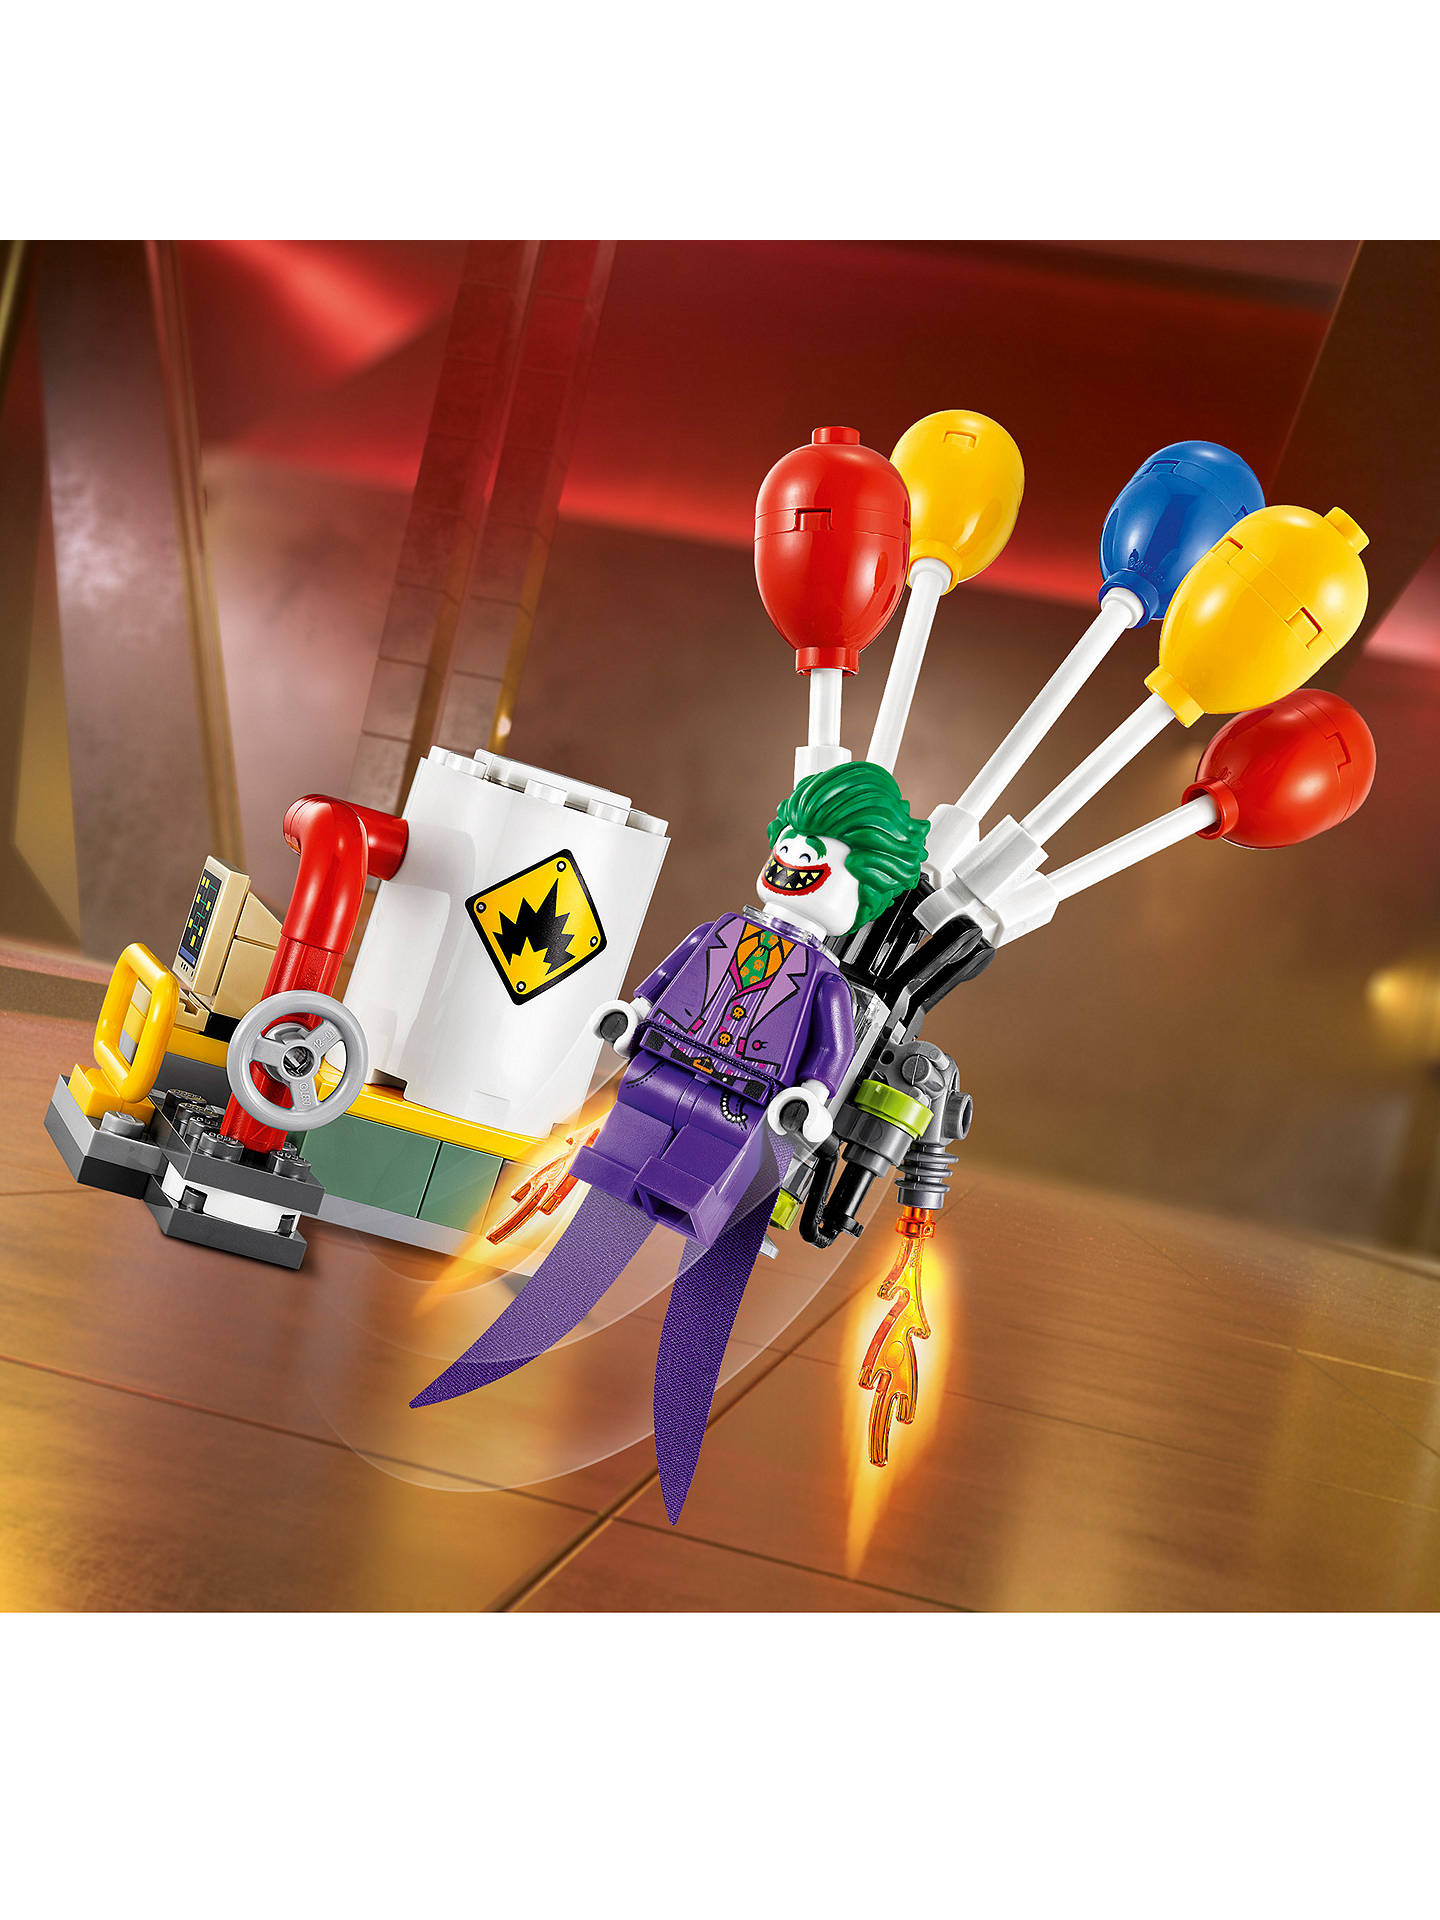 ... BuyLEGO The LEGO Batman Movie 70900 The Joker Balloon Online at johnlewis.com